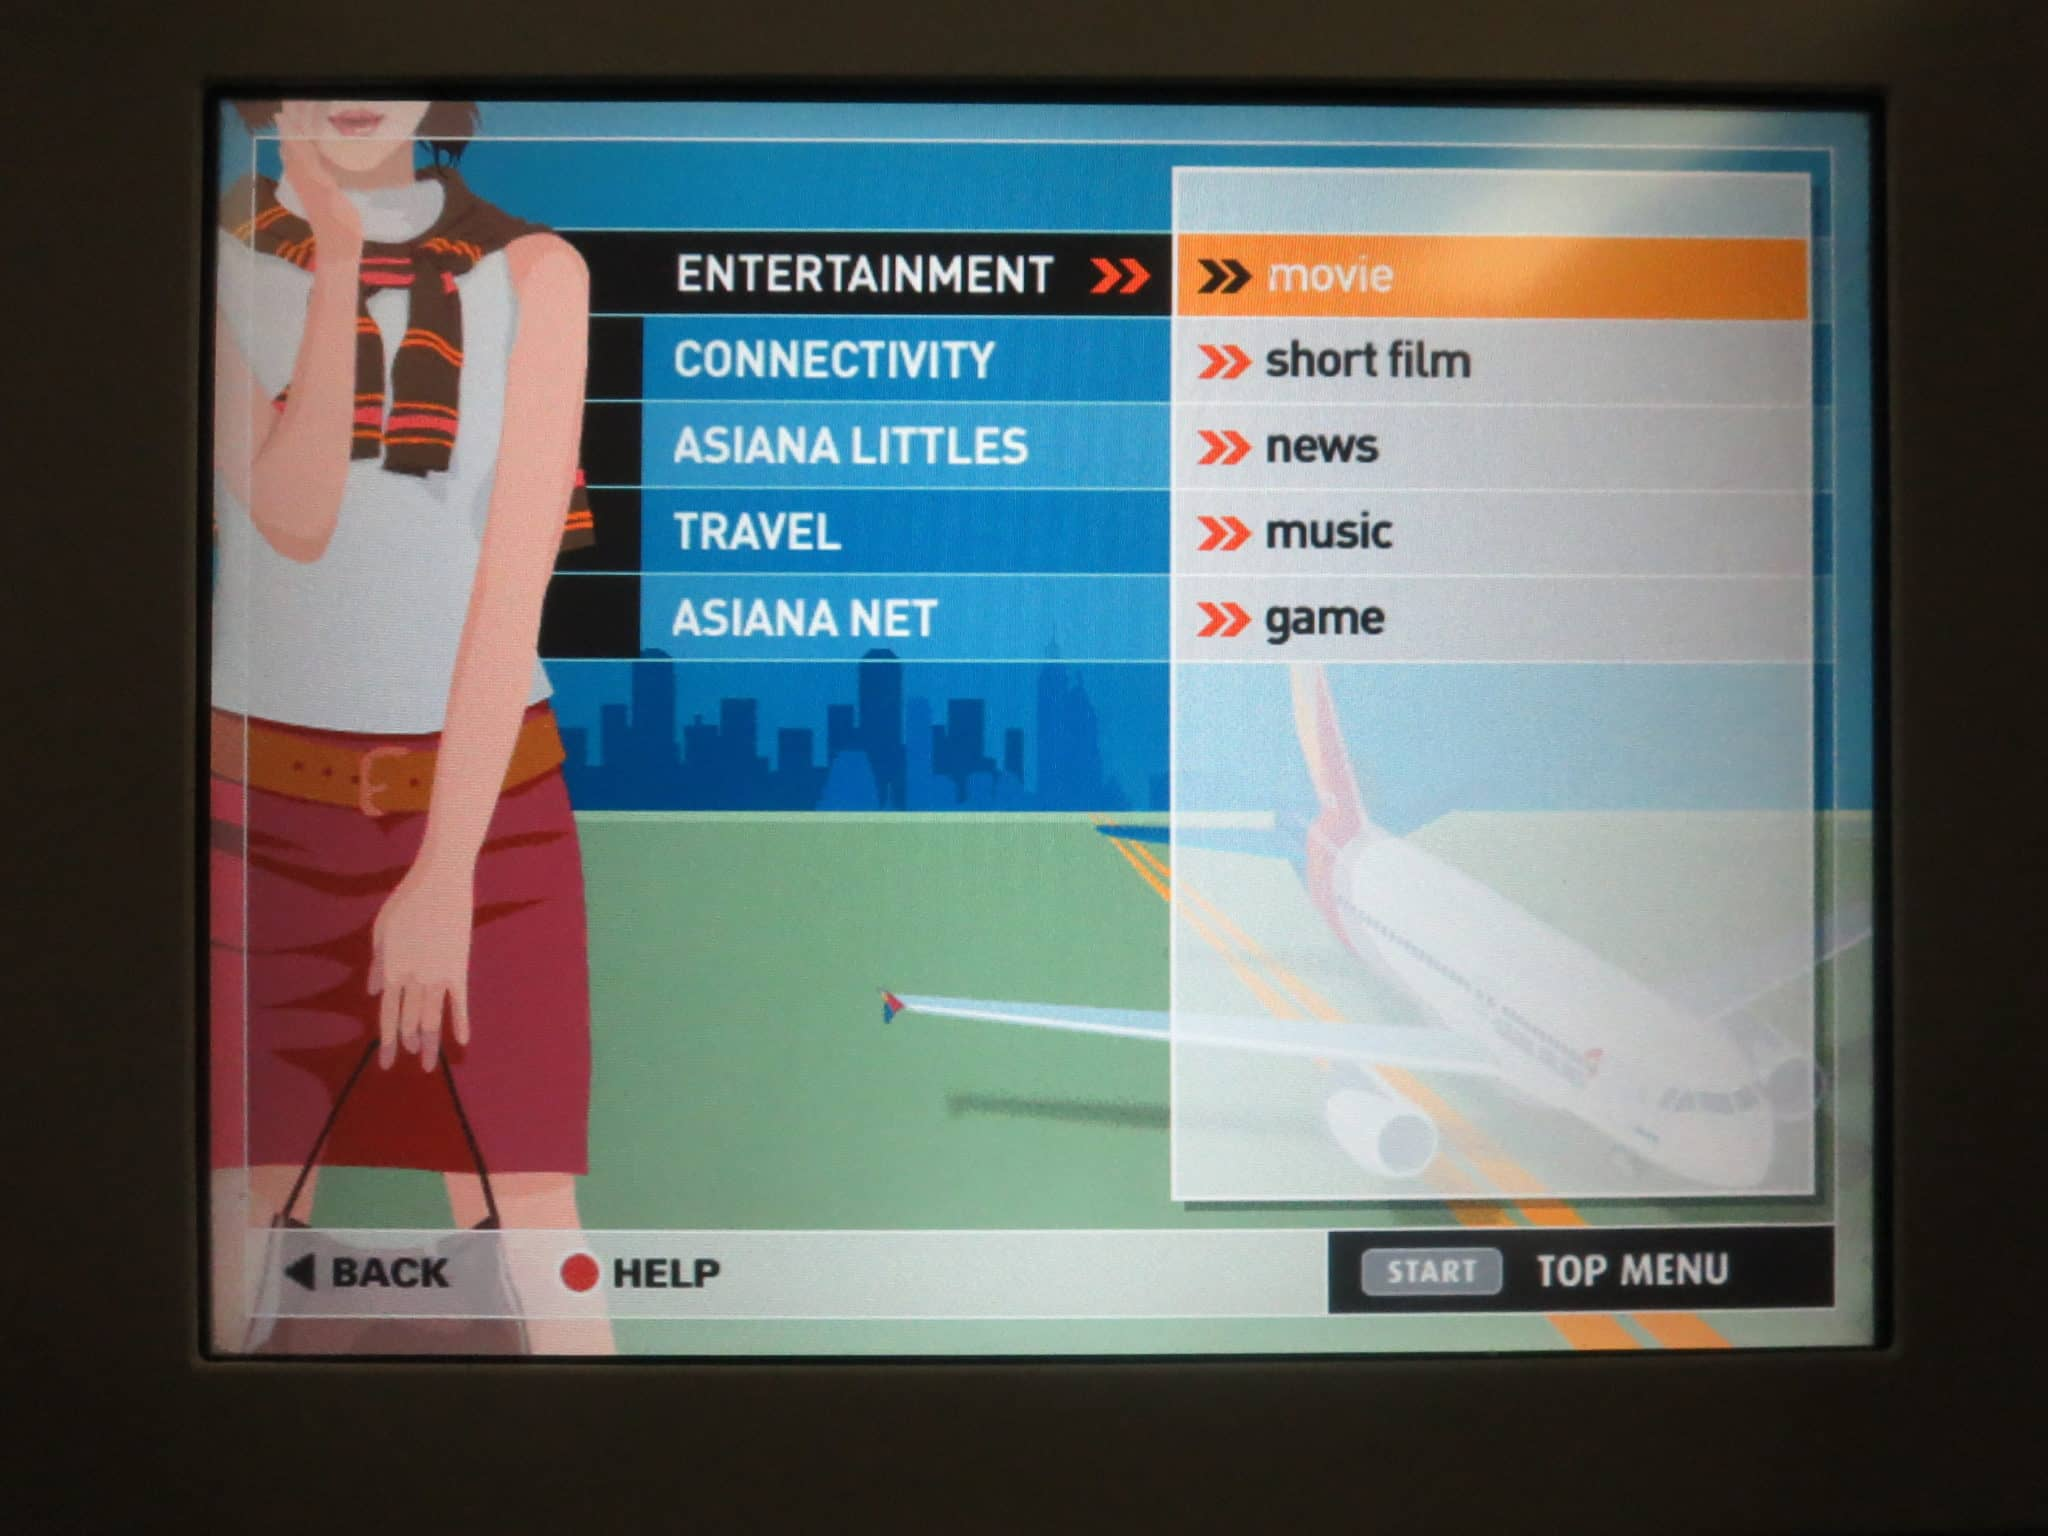 Asiana Business Class Entertainment System